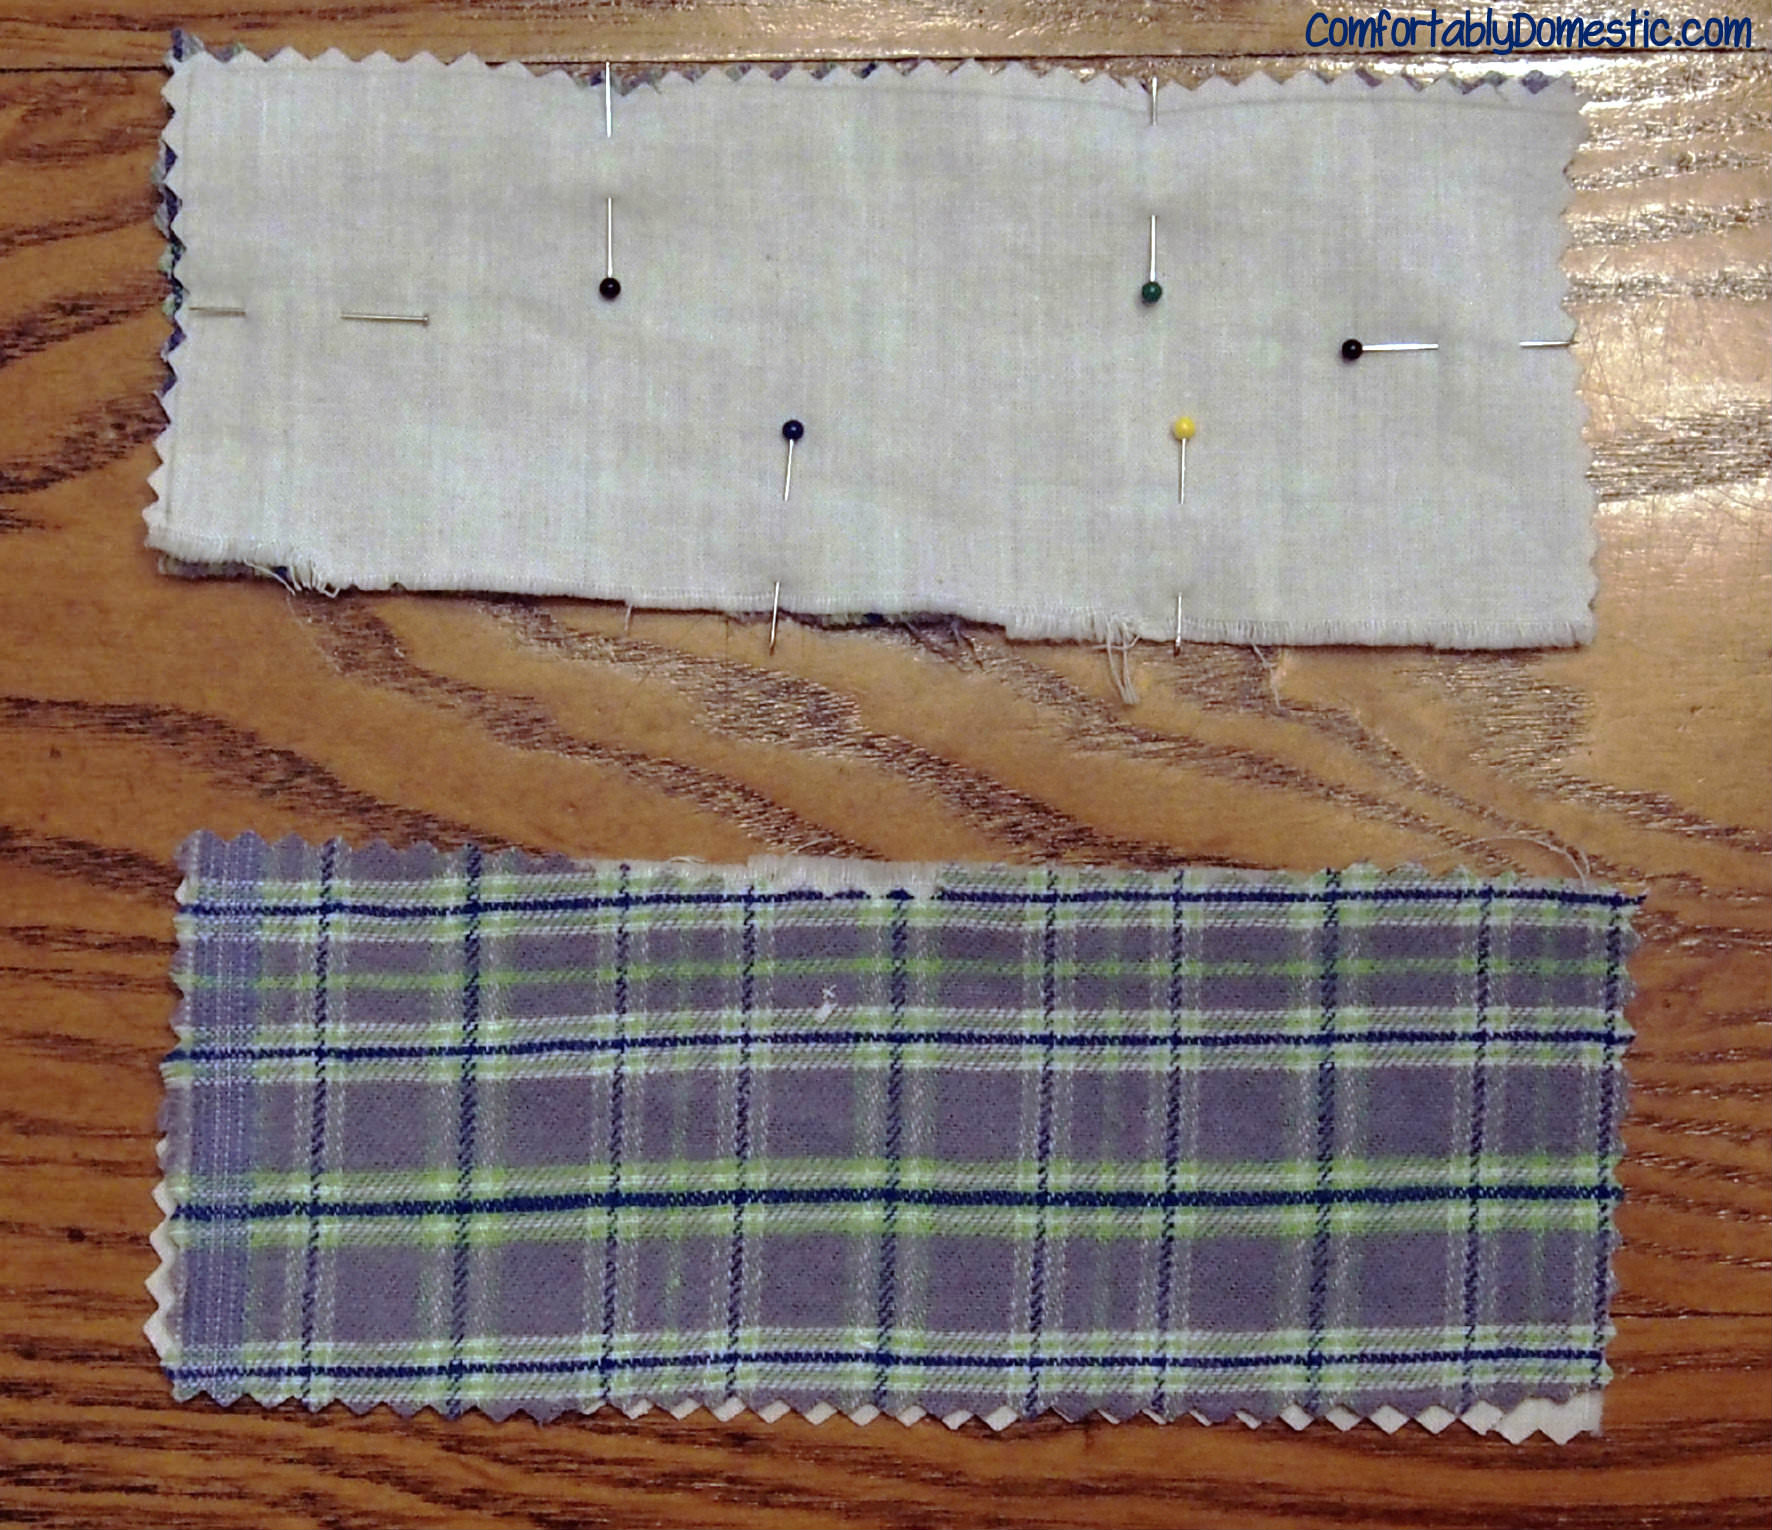 base fabric cuts